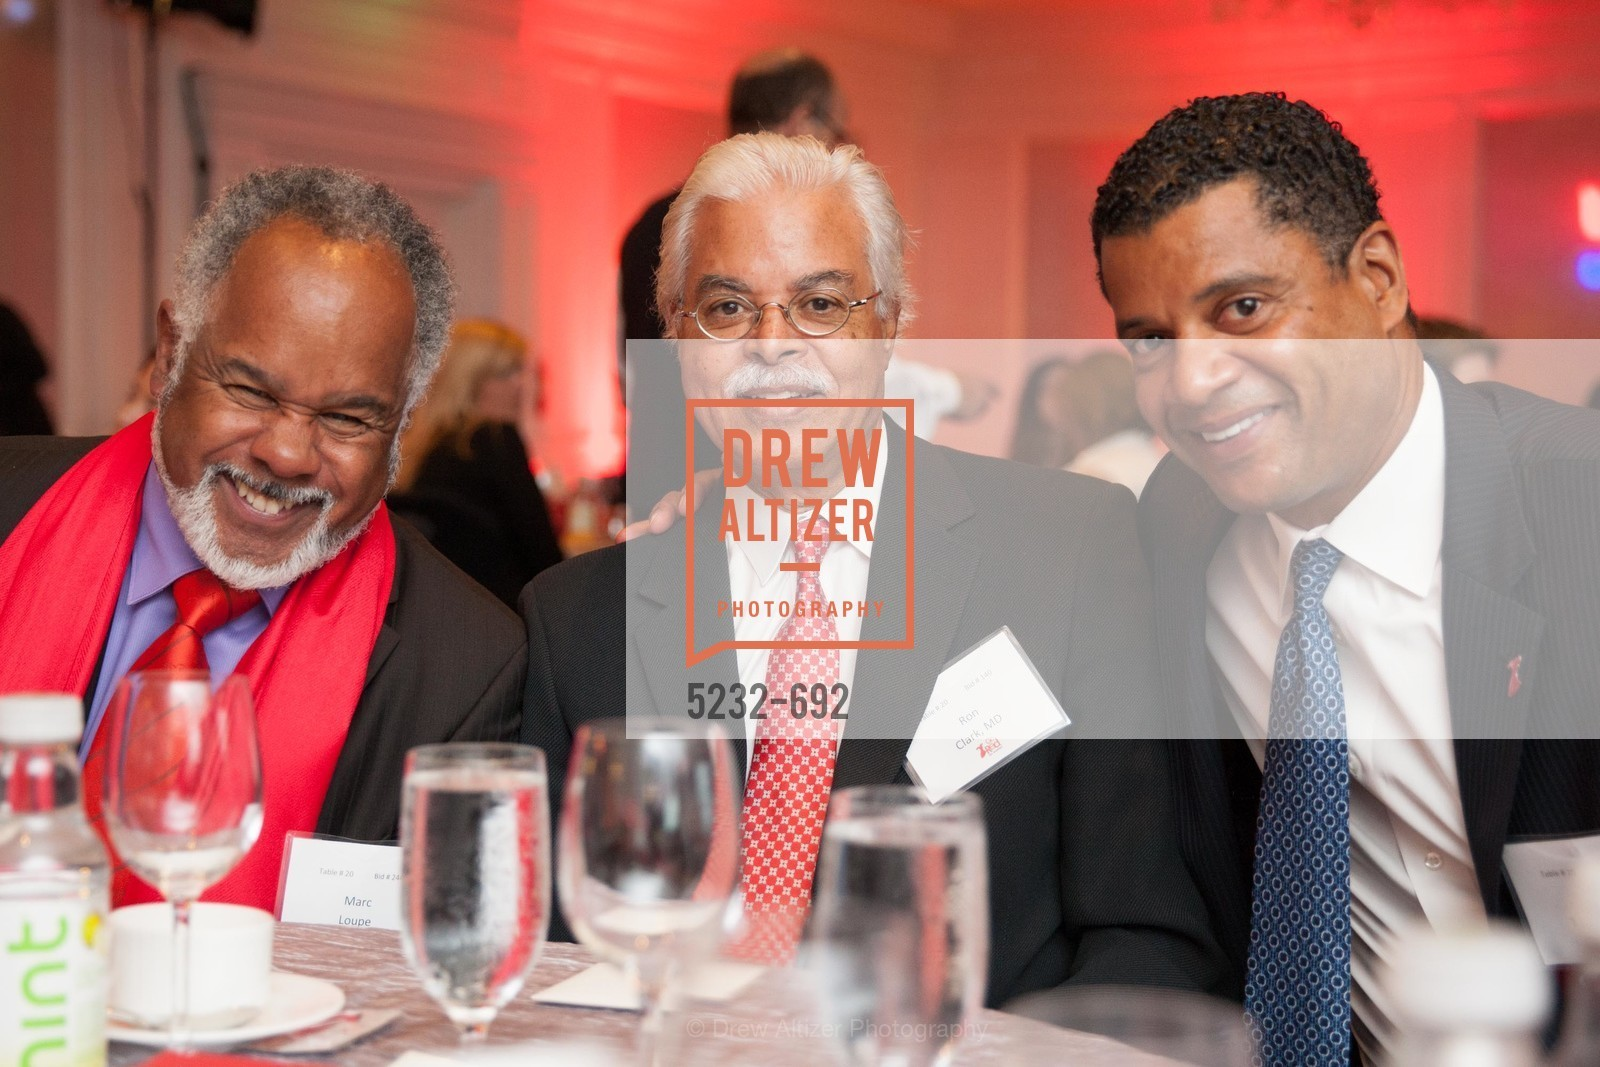 Marc Loupe, Ron Clark, Jeff Thomas, 2015 GoRed for Women Luncheon, US, May 2nd, 2015,Drew Altizer, Drew Altizer Photography, full-service event agency, private events, San Francisco photographer, photographer California